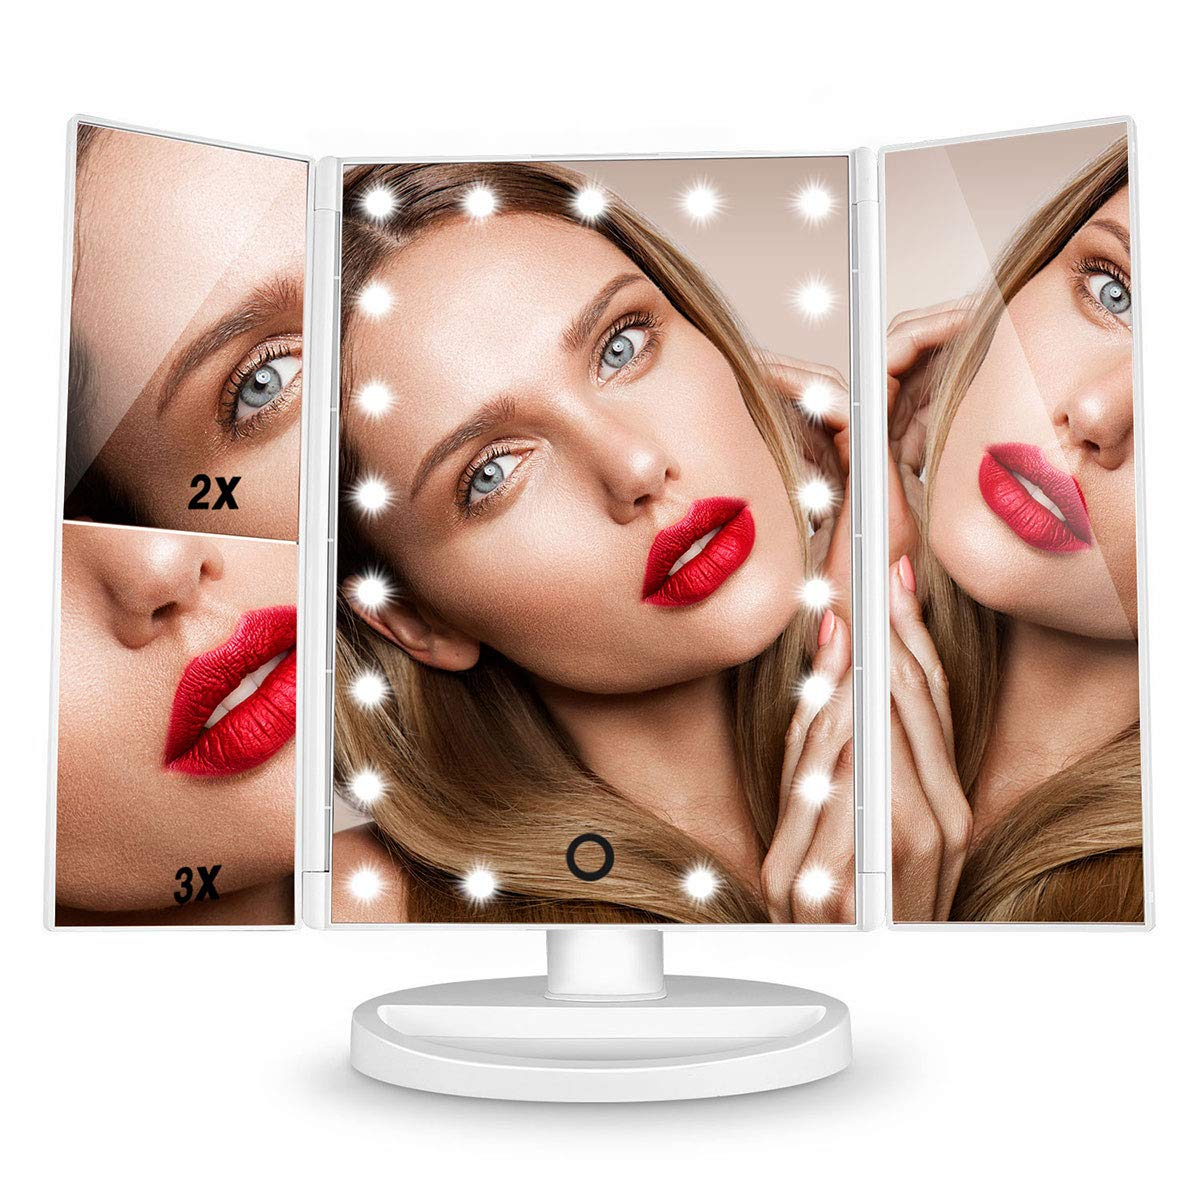 Vanity Mirror With Lights, HAMSWAN Lighted Makeup Mirror, Cosmetic Mirror, Magnifying Mirror-1X/2X/3X, Lighted Mirror with 21pcs Mirror Lights,180 Degree Rotation-White SM217-DL